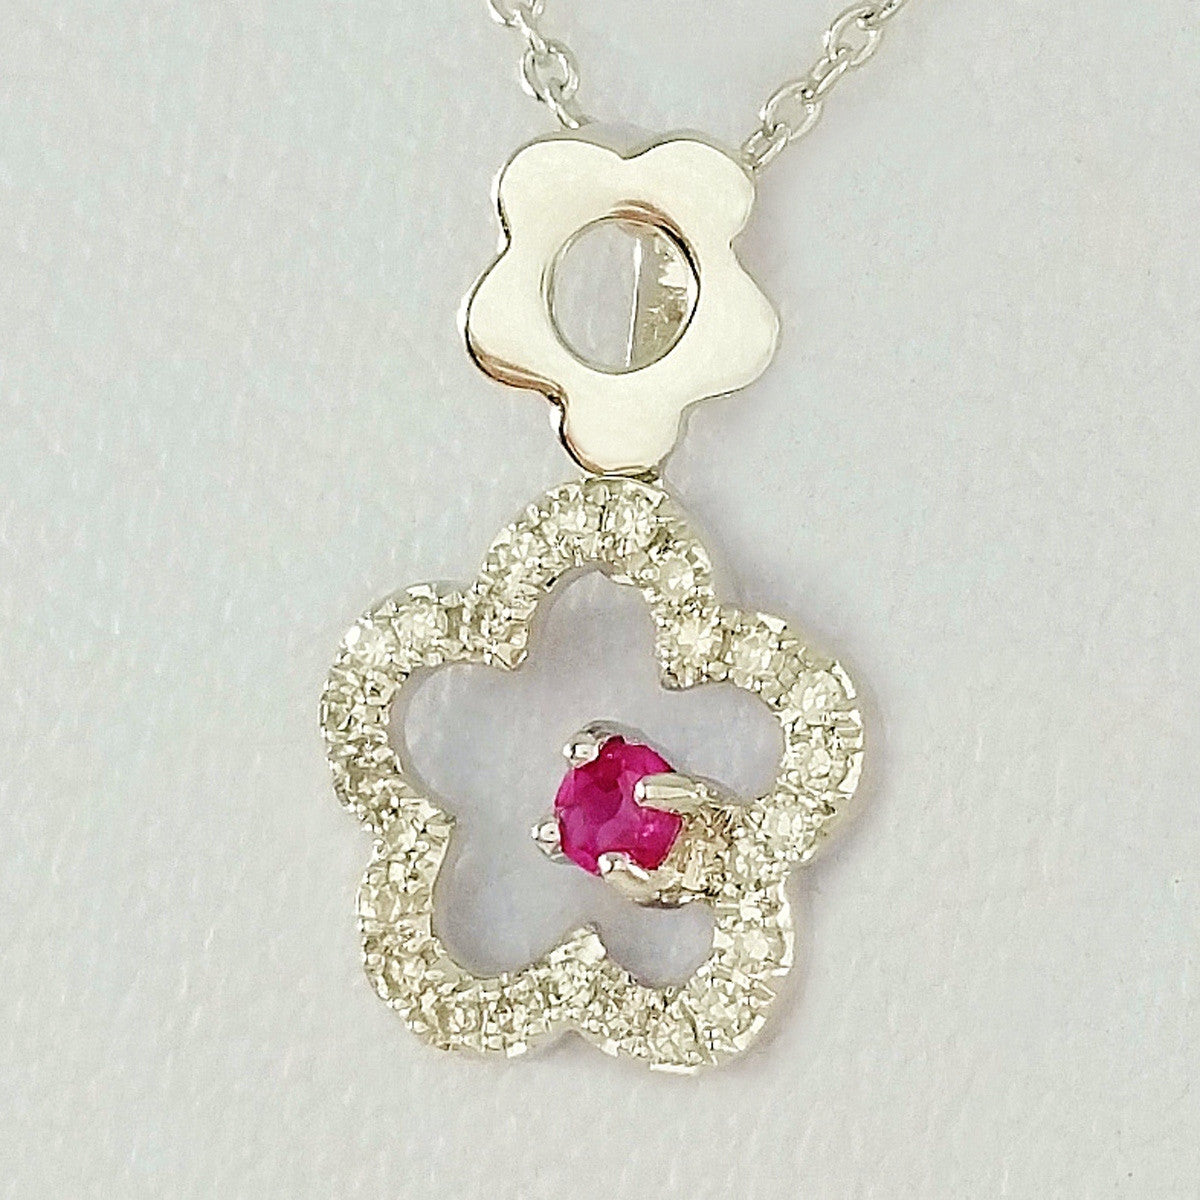 9K SOLID WHITE GOLD 45CM NECKLACE WITH NATURAL RUBY AND 25 DIAMOND PENDANT.